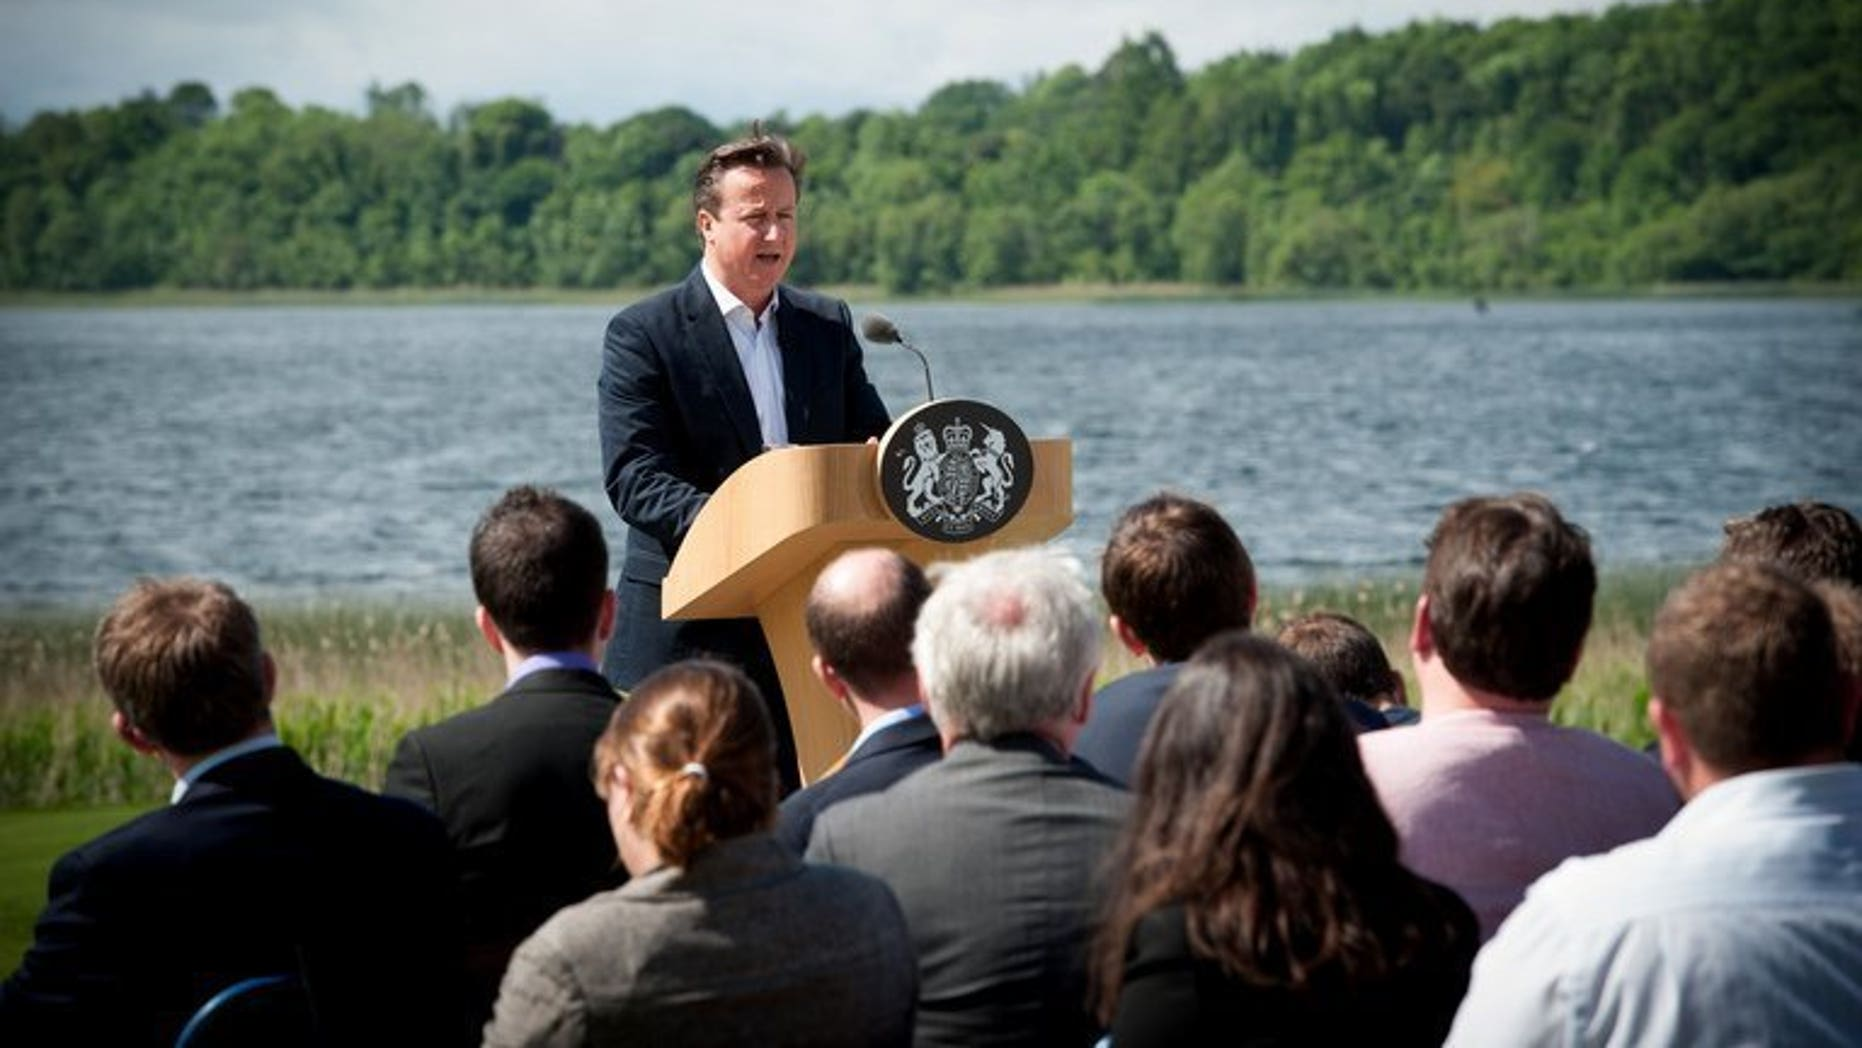 British Prime Minister David Cameron speaks during a press conference at the end of the G8 summit at Lough Erne resort, Northern Ireland, June 18, 2013. A dip in the icy waters of a Northern Irish lake proved the ideal tonic before a day of tough talks with G8 leaders on tax evasion and the Syria crisis, Cameron said on Tuesday.